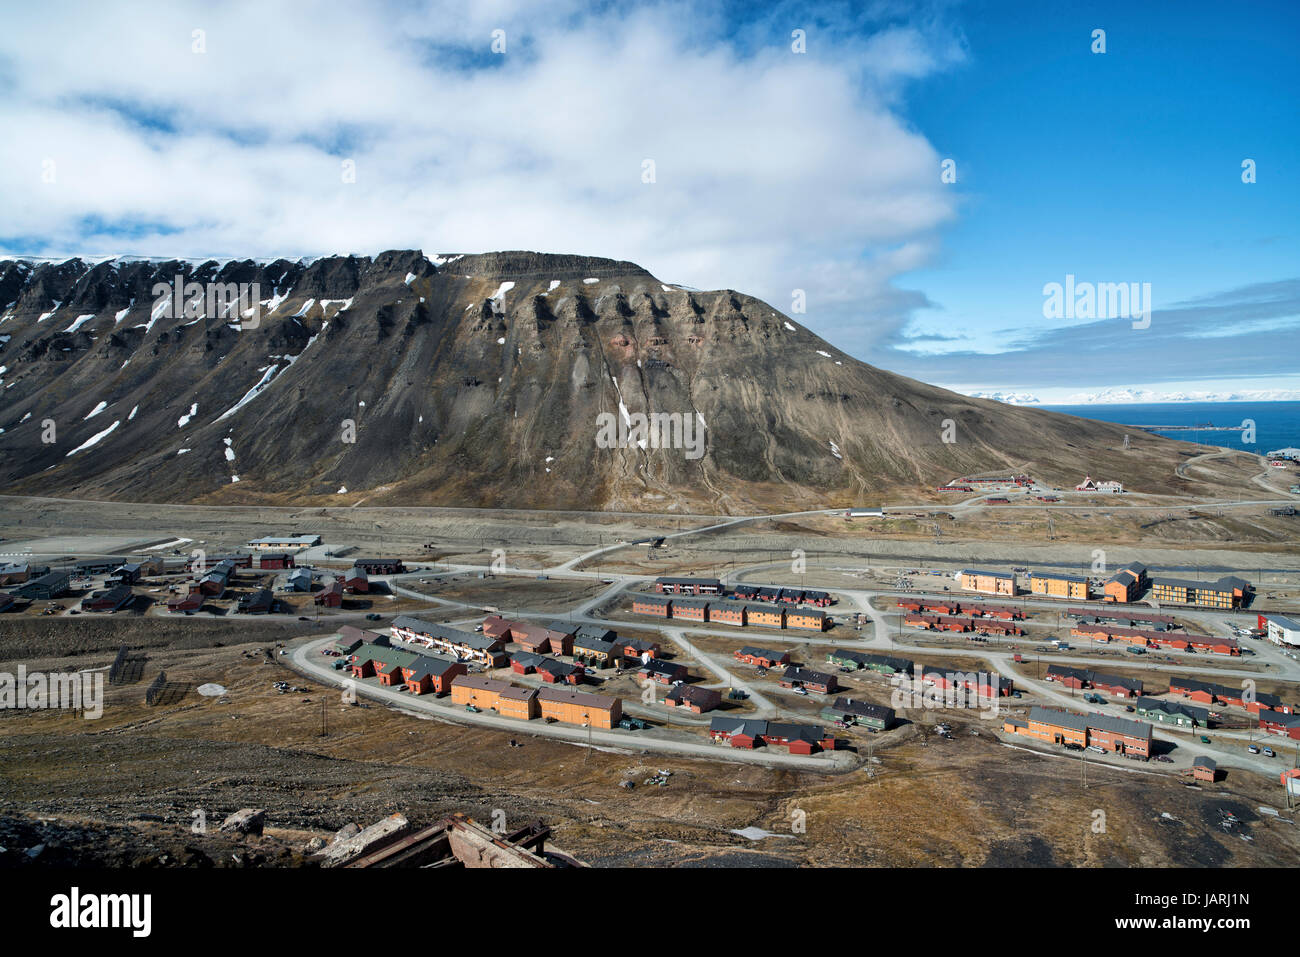 Panoramic view of Longyearbyen and Platåberget. Blick auf Longyearbyen und Platåberget. - Stock Image